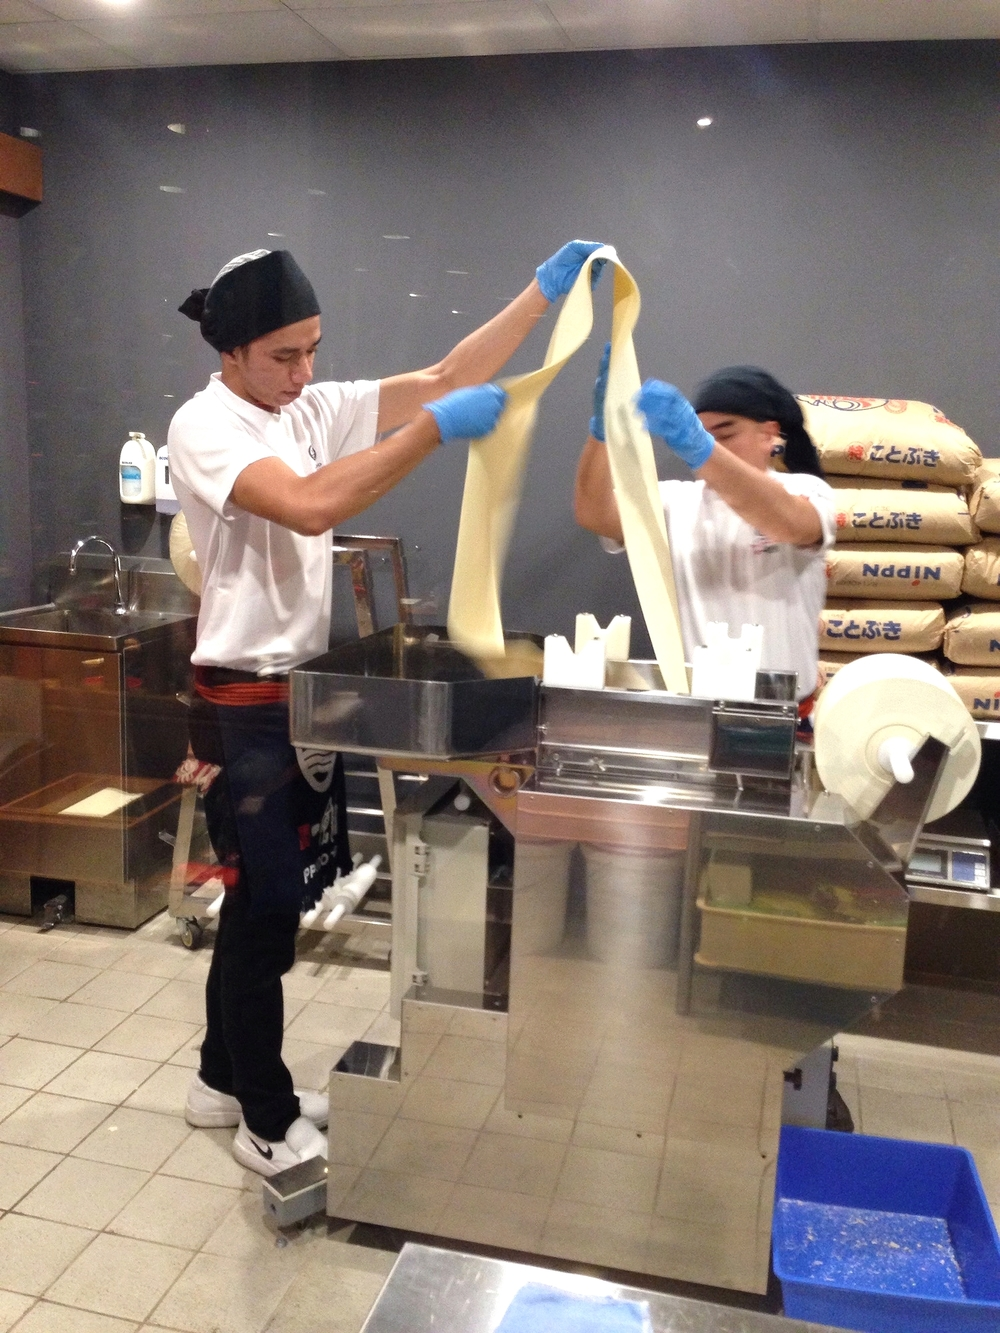 Making their noodles in house at Ippudo.